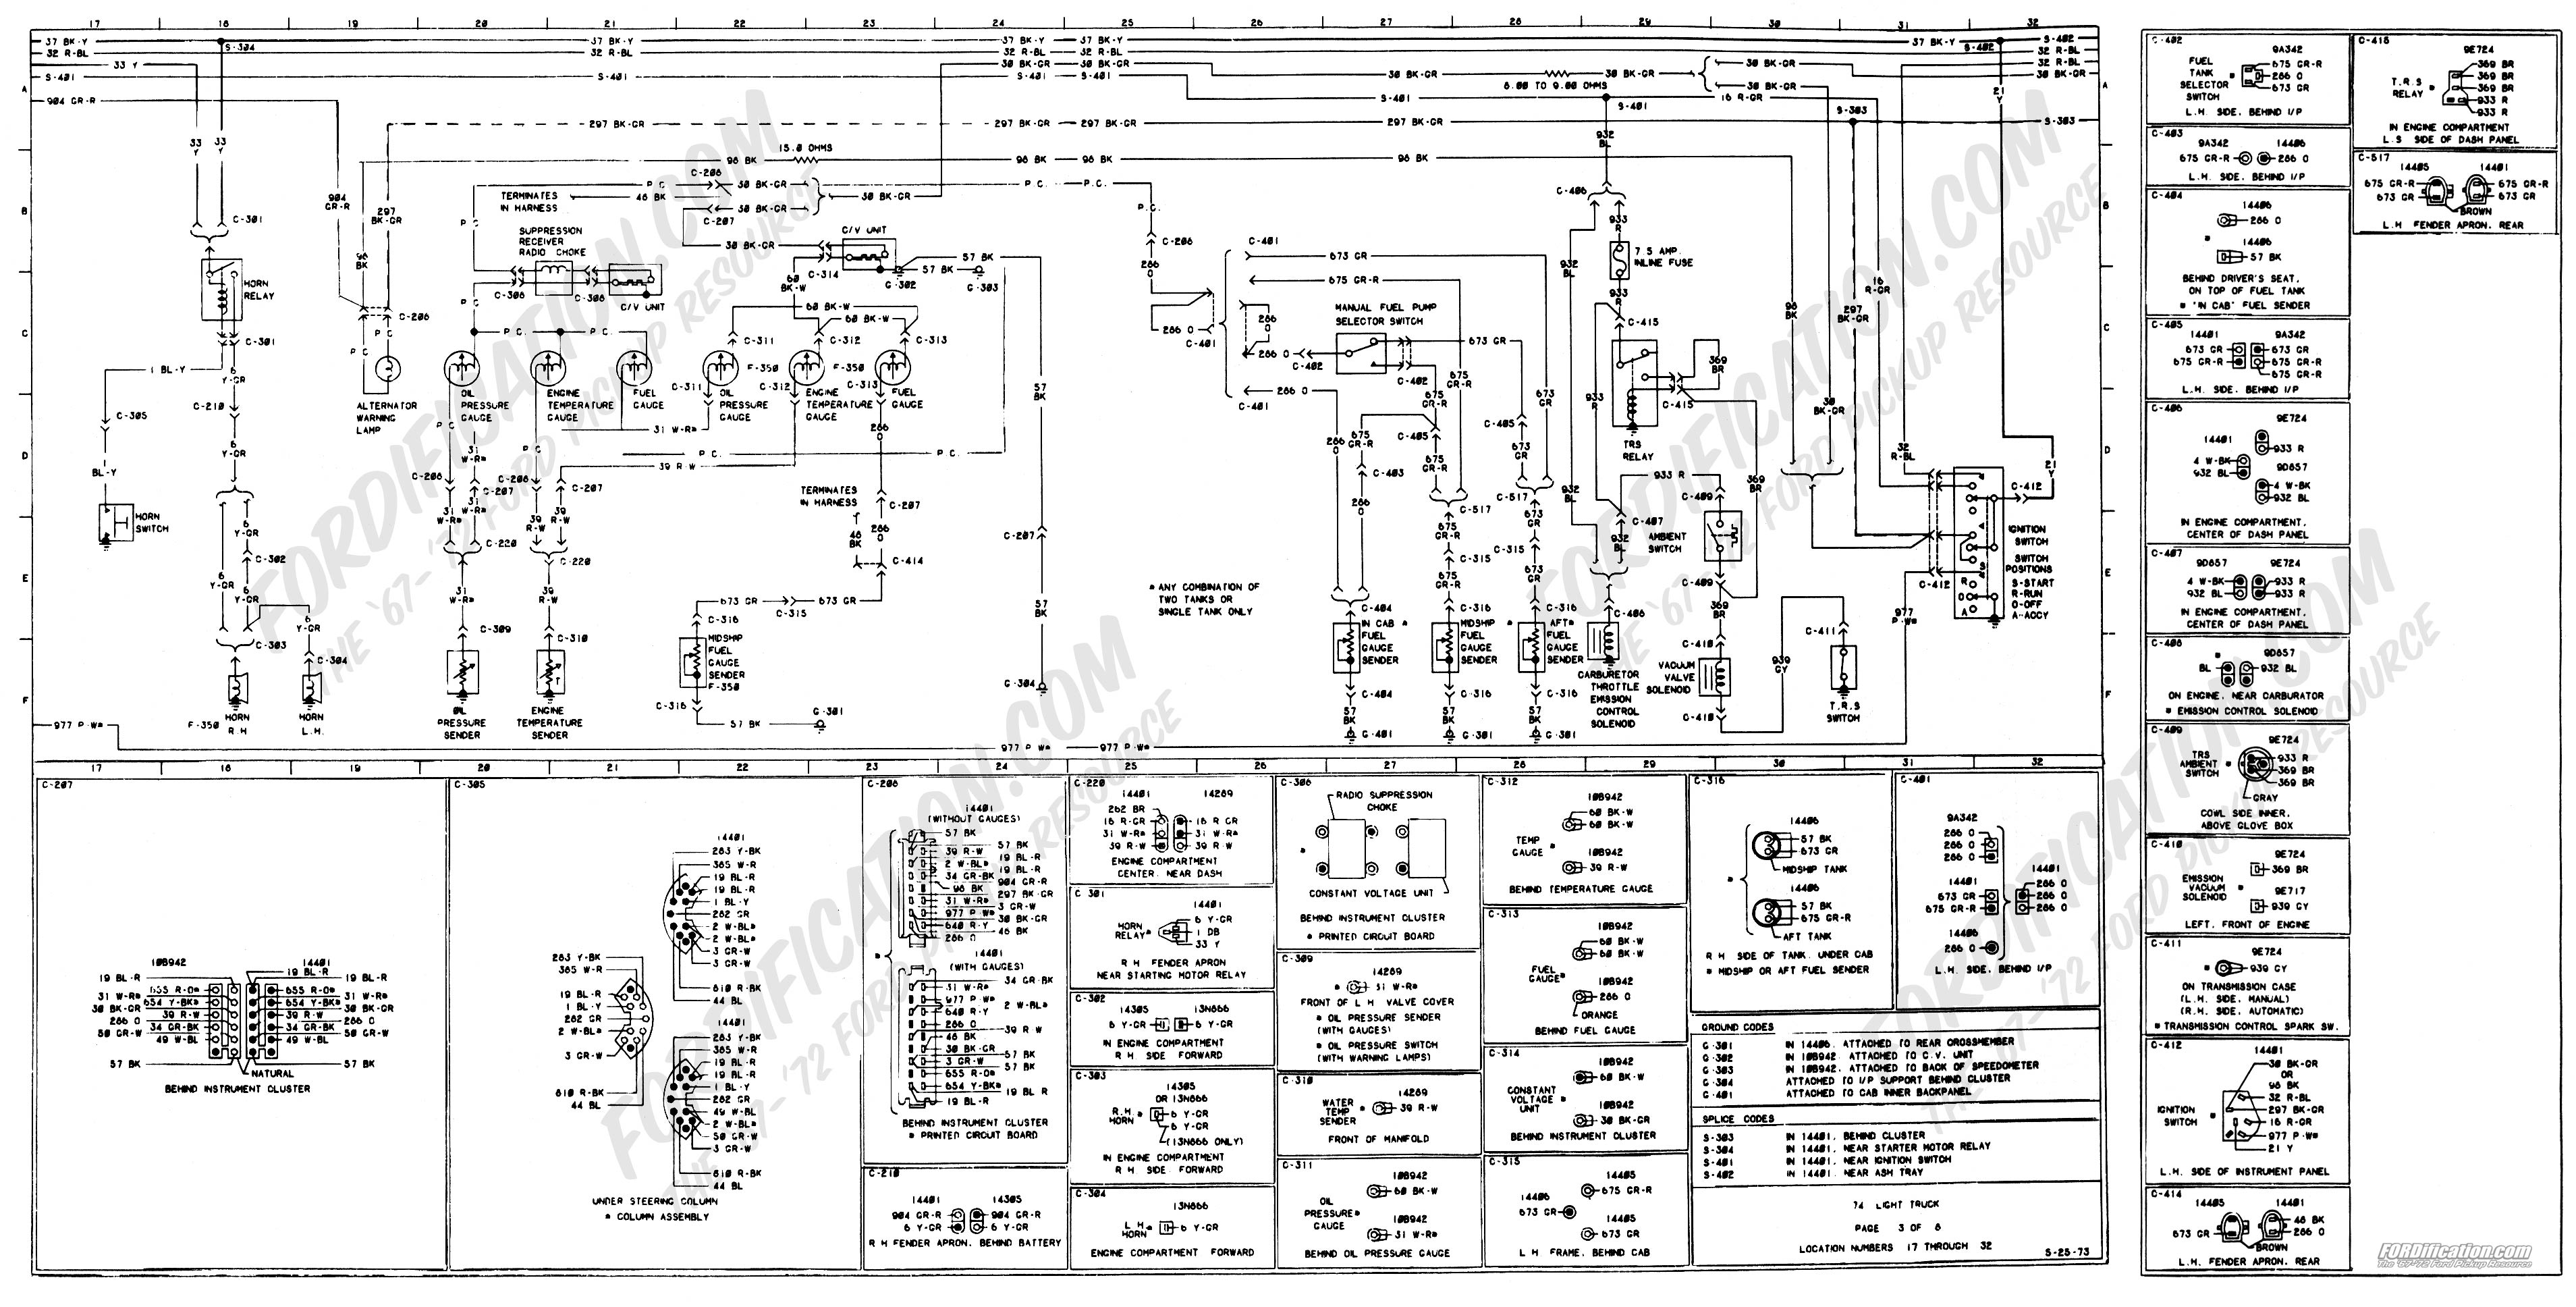 wiring_74master_3of8 1973 1979 ford truck wiring diagrams & schematics fordification net ford 555d wiring diagram at pacquiaovsvargaslive.co